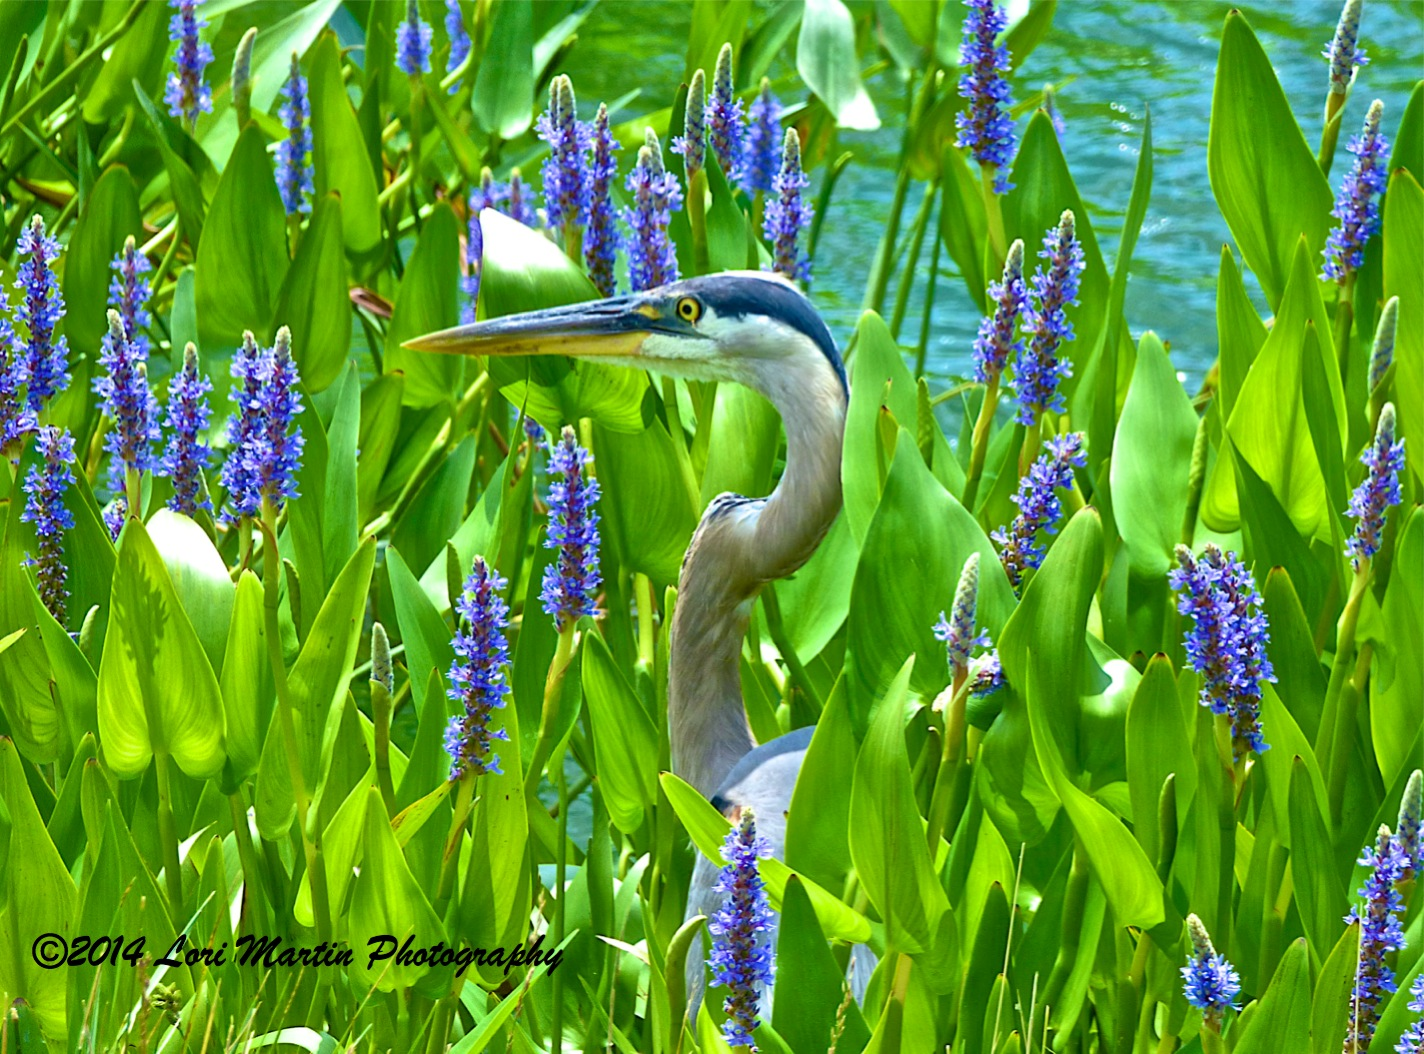 Reader photo: Tall blossoms and a cooperative heron produce a memorable shot